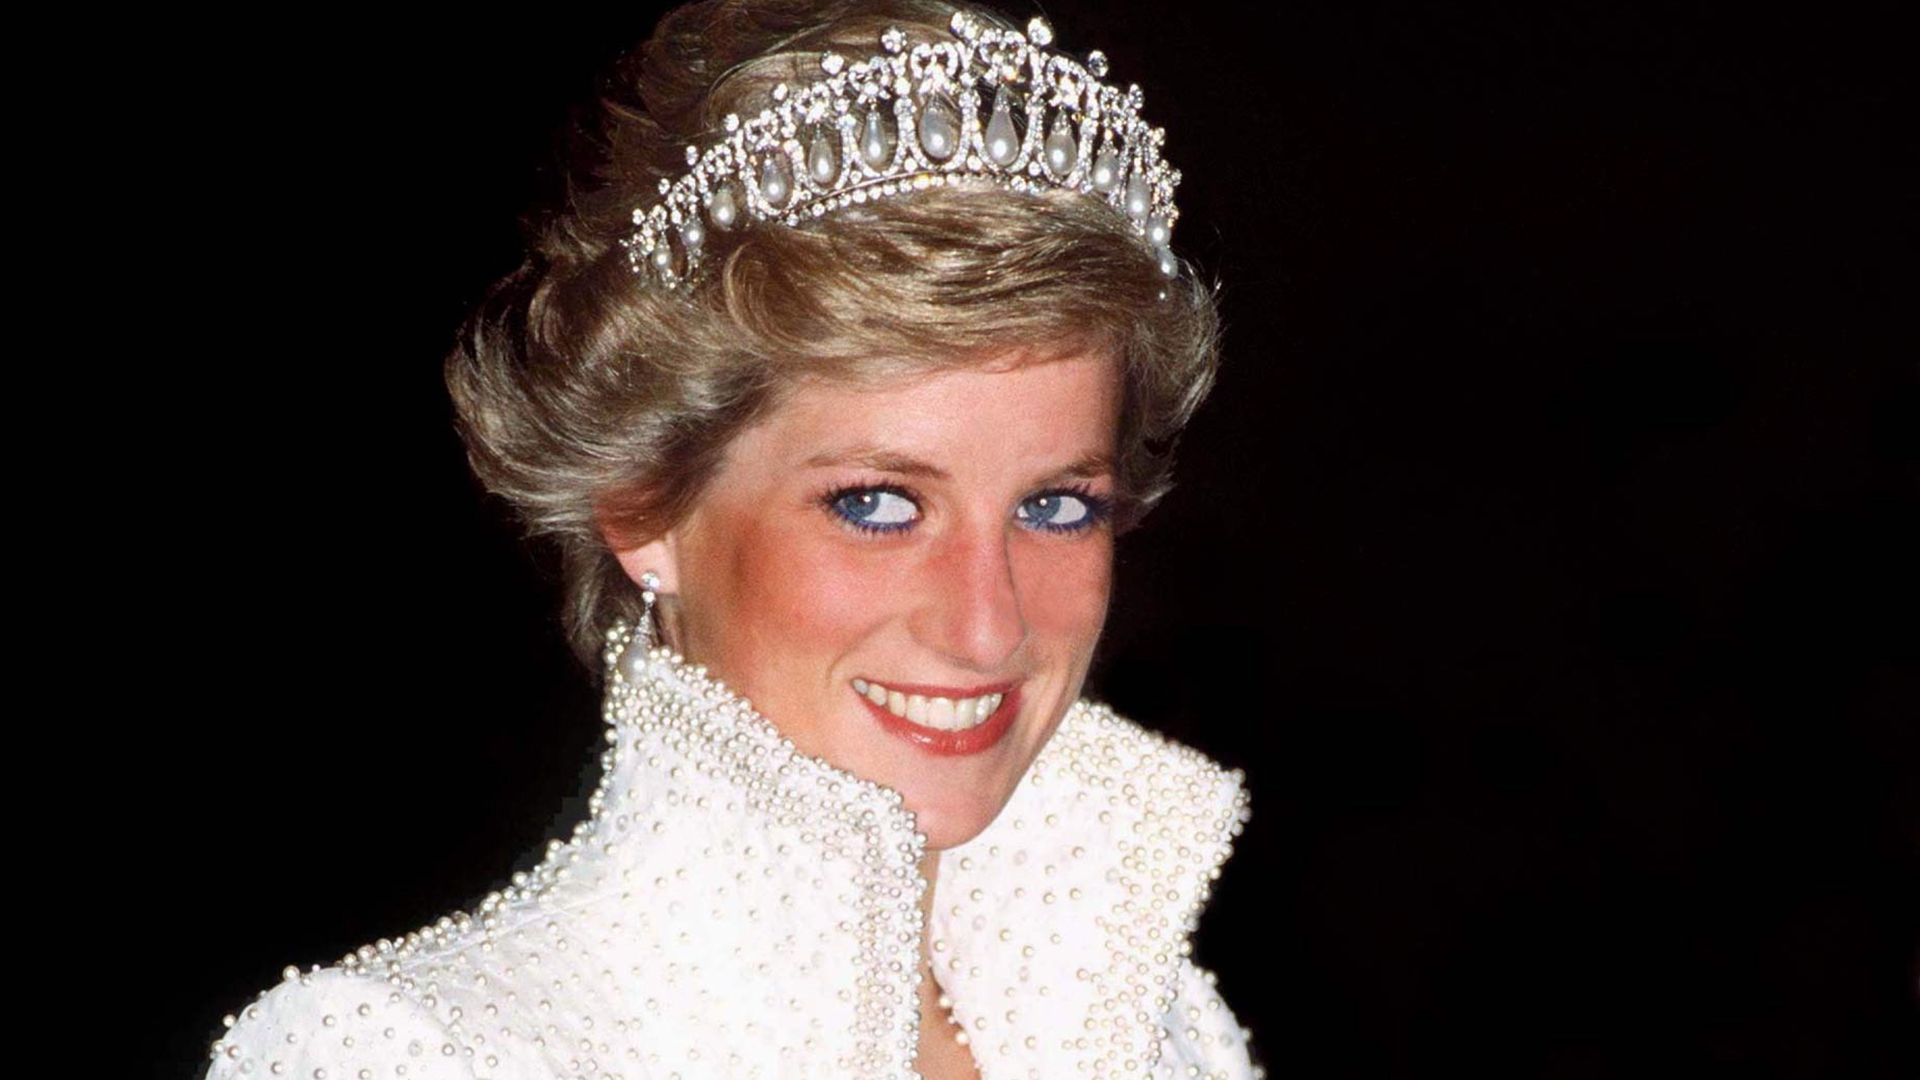 It Has Been 20 Years Since Princess Diana Passed Away Images, Photos, Reviews